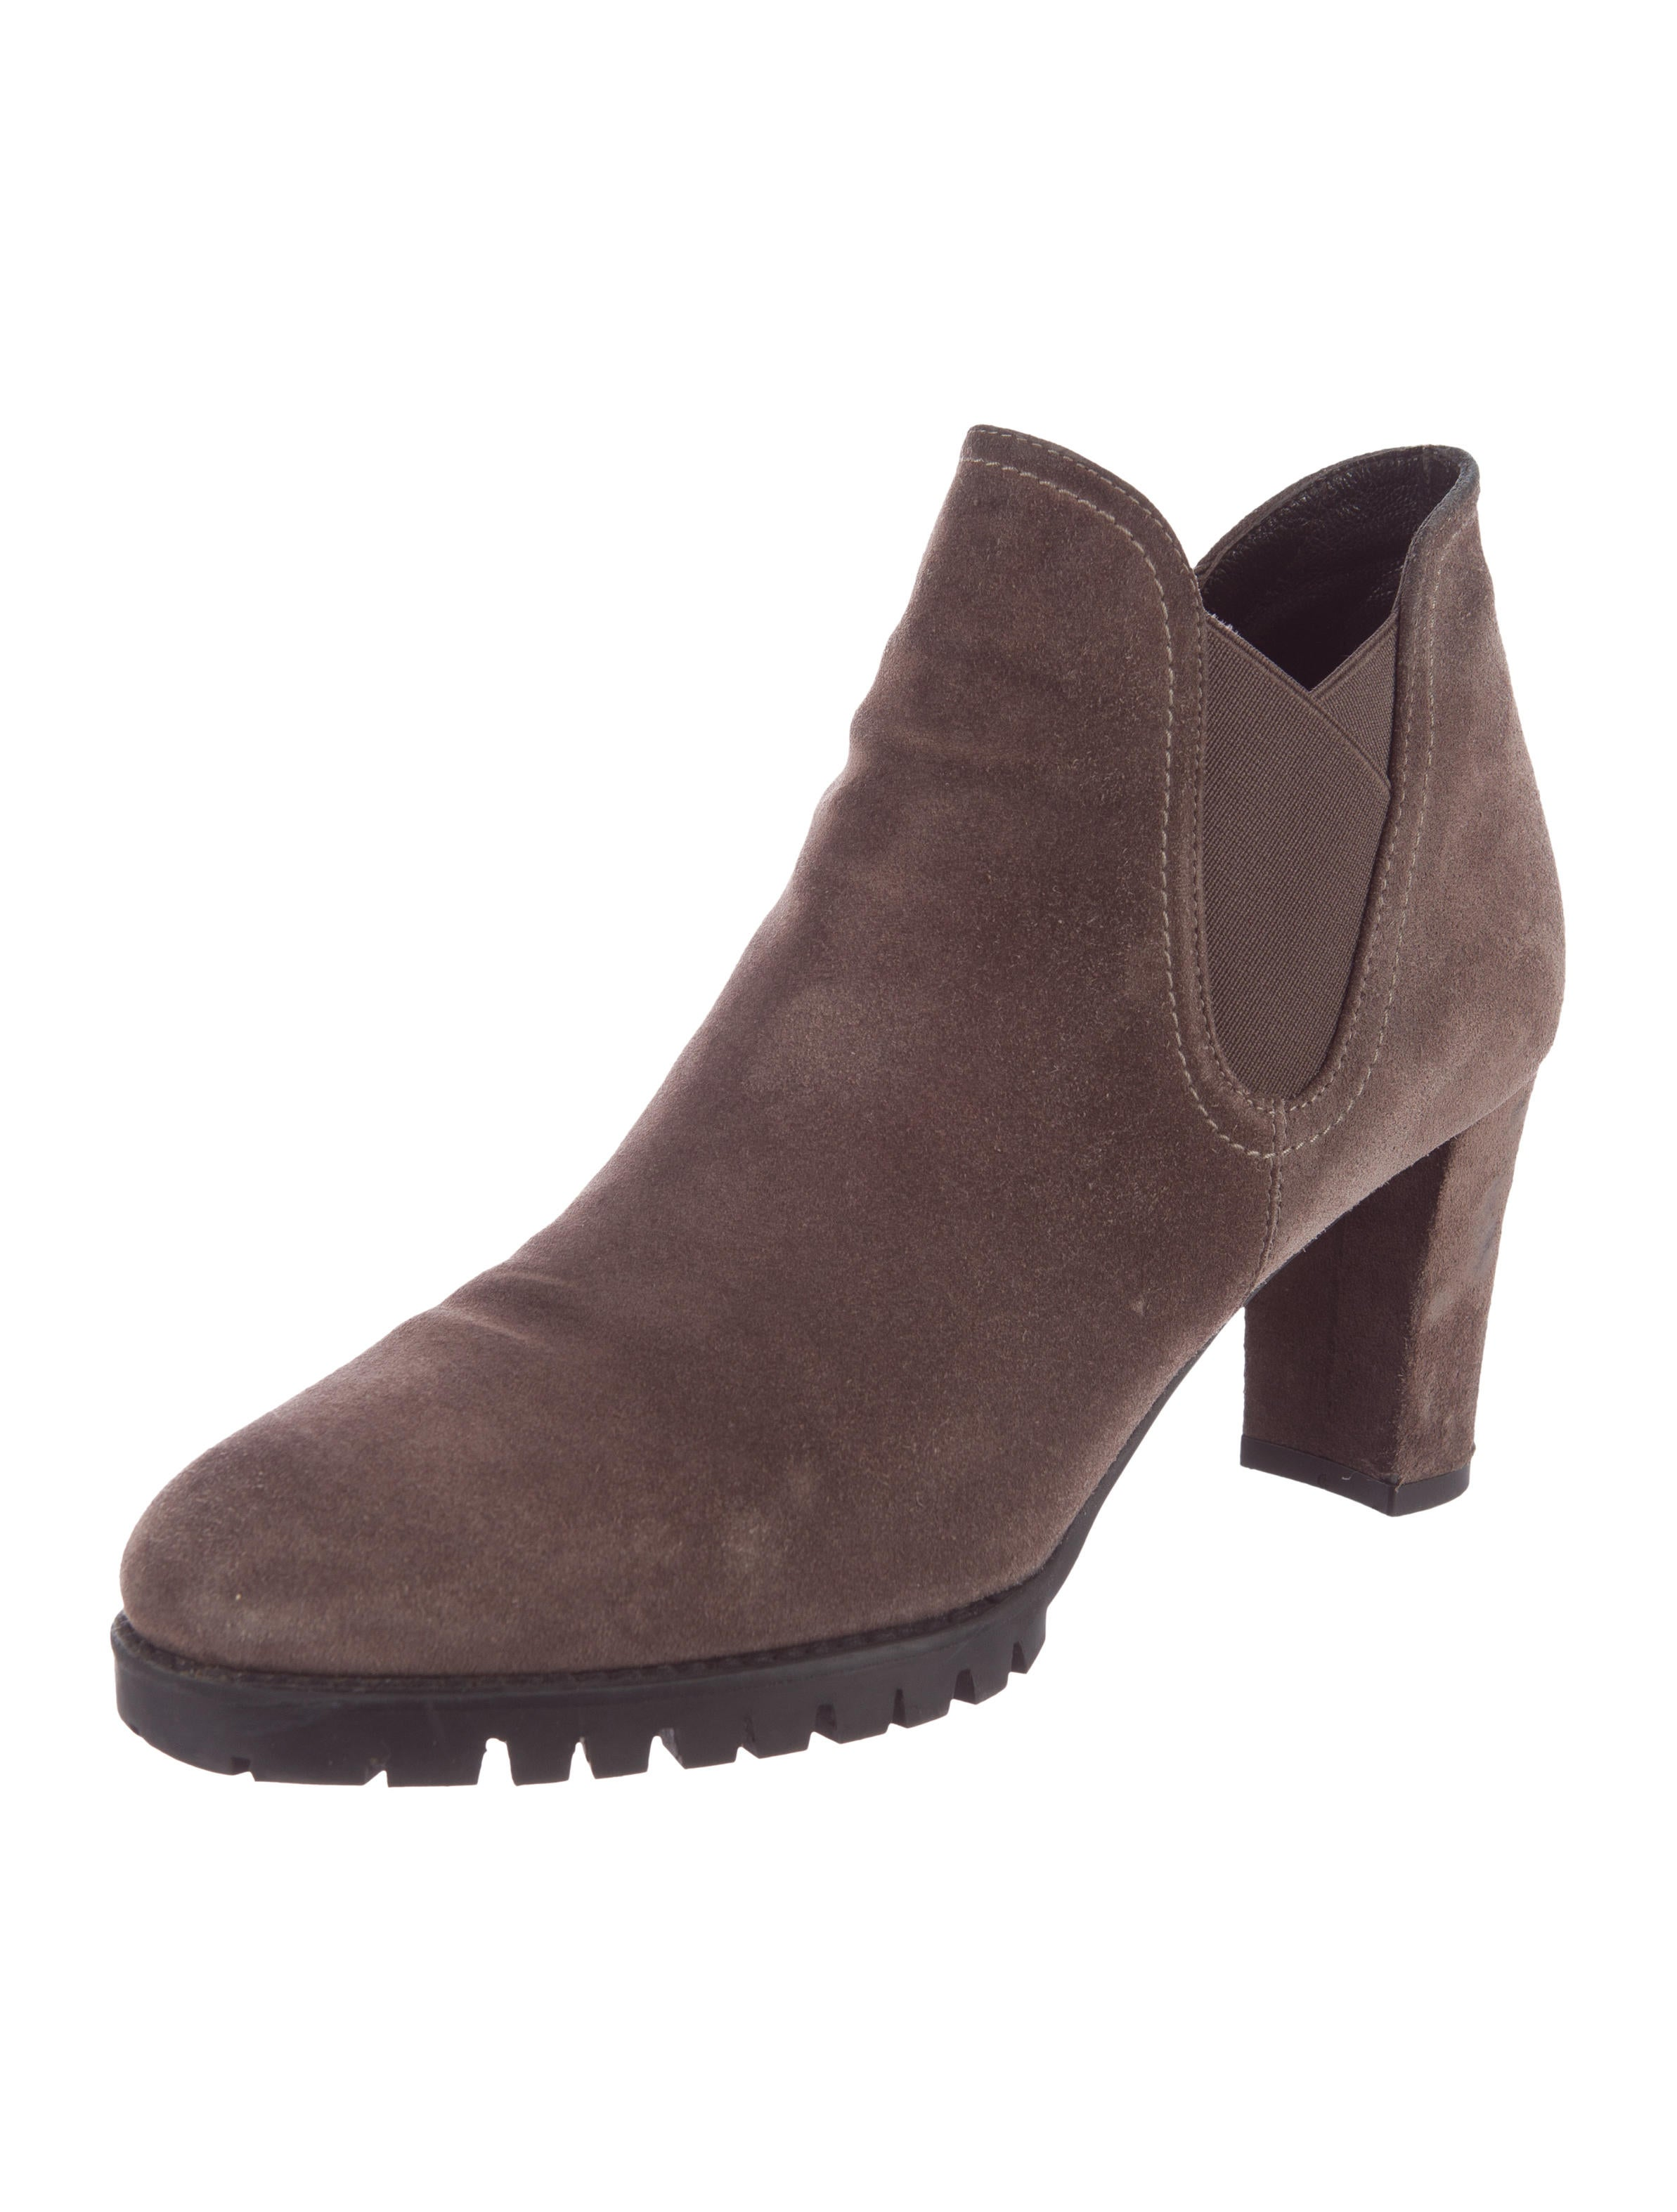 stuart weitzman suede leather ankle boots shoes